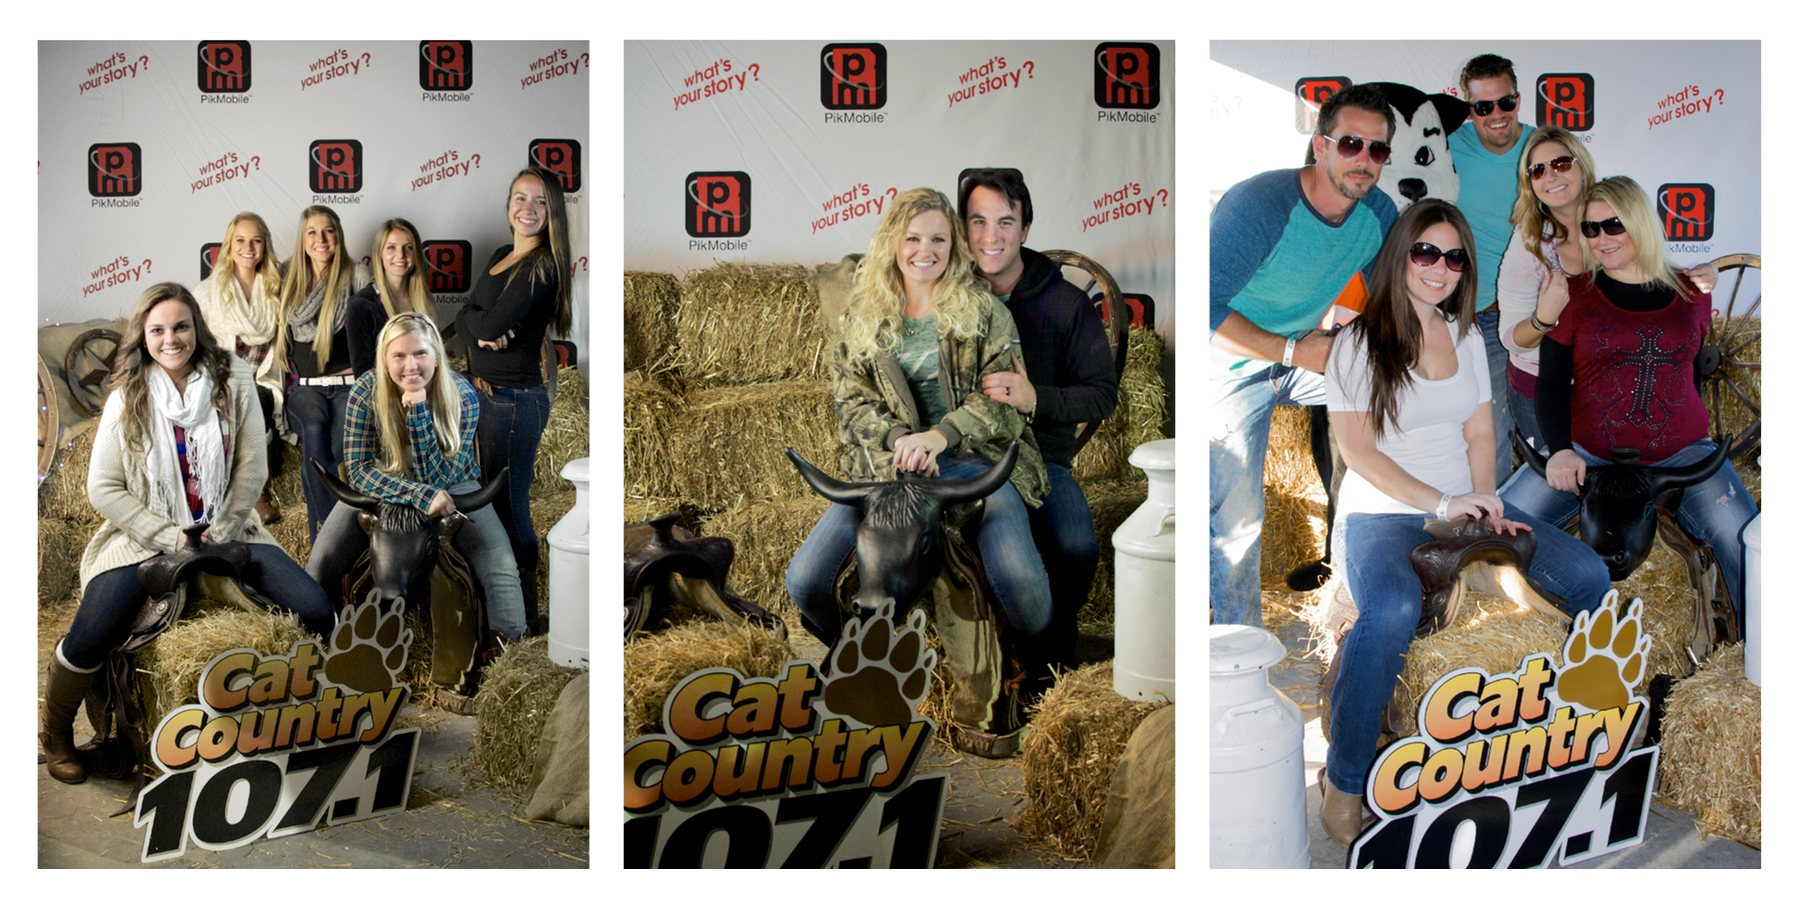 Country Bash Photo Booth © 2014 cesar alsina